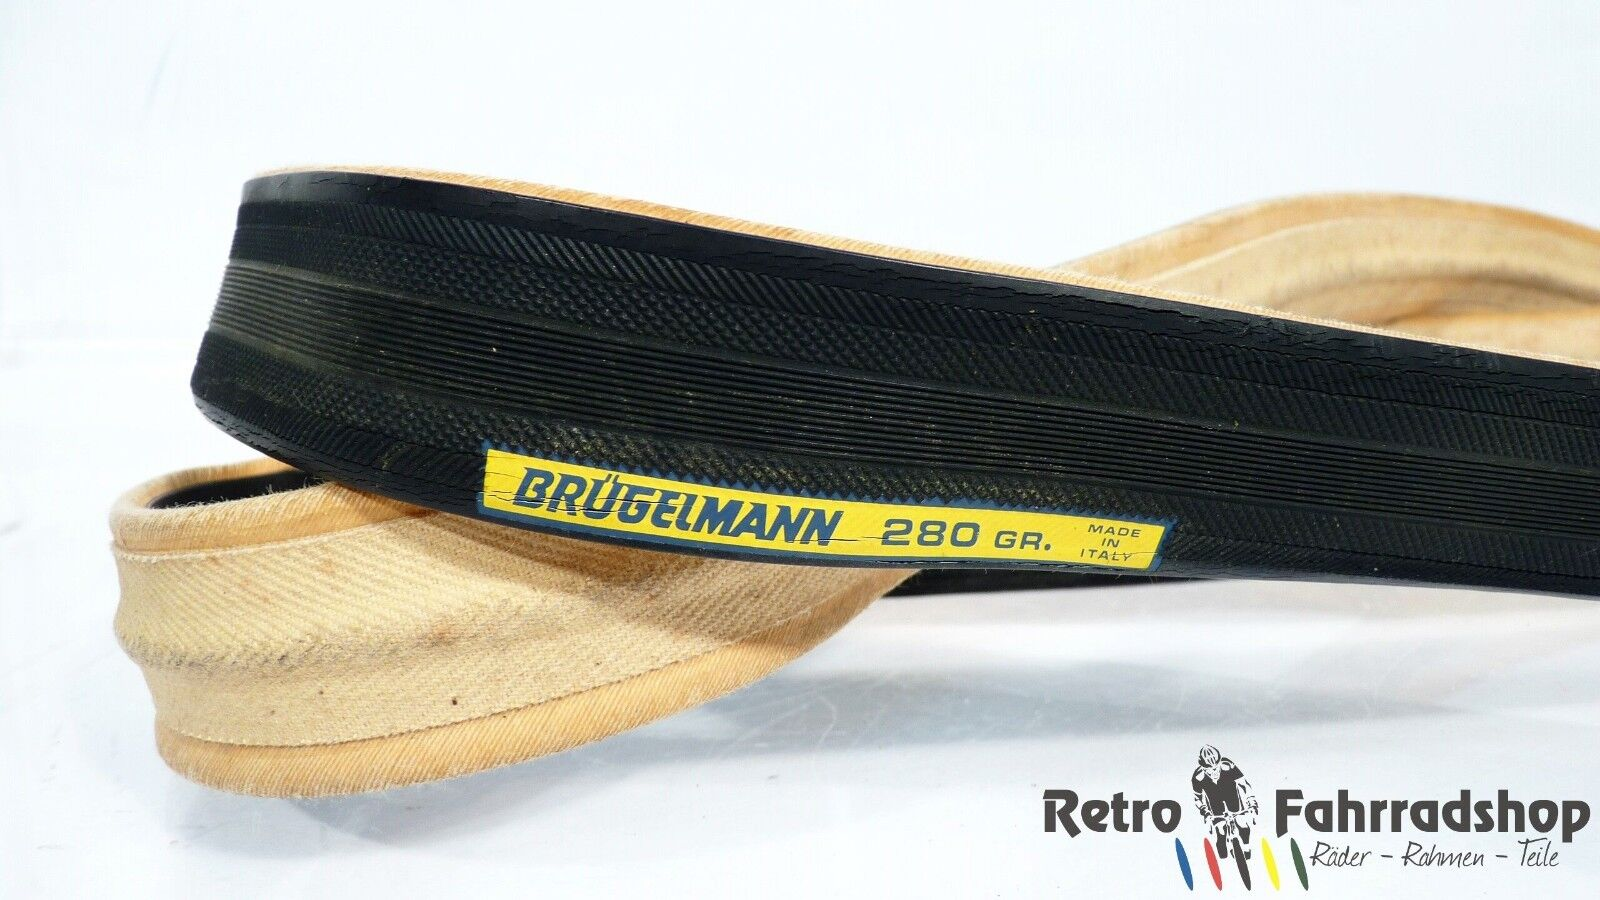 NEW brügelmann 280 Hose Tyre 28  NOS Made  in  RARE 1980er 285g  order now with big discount & free delivery